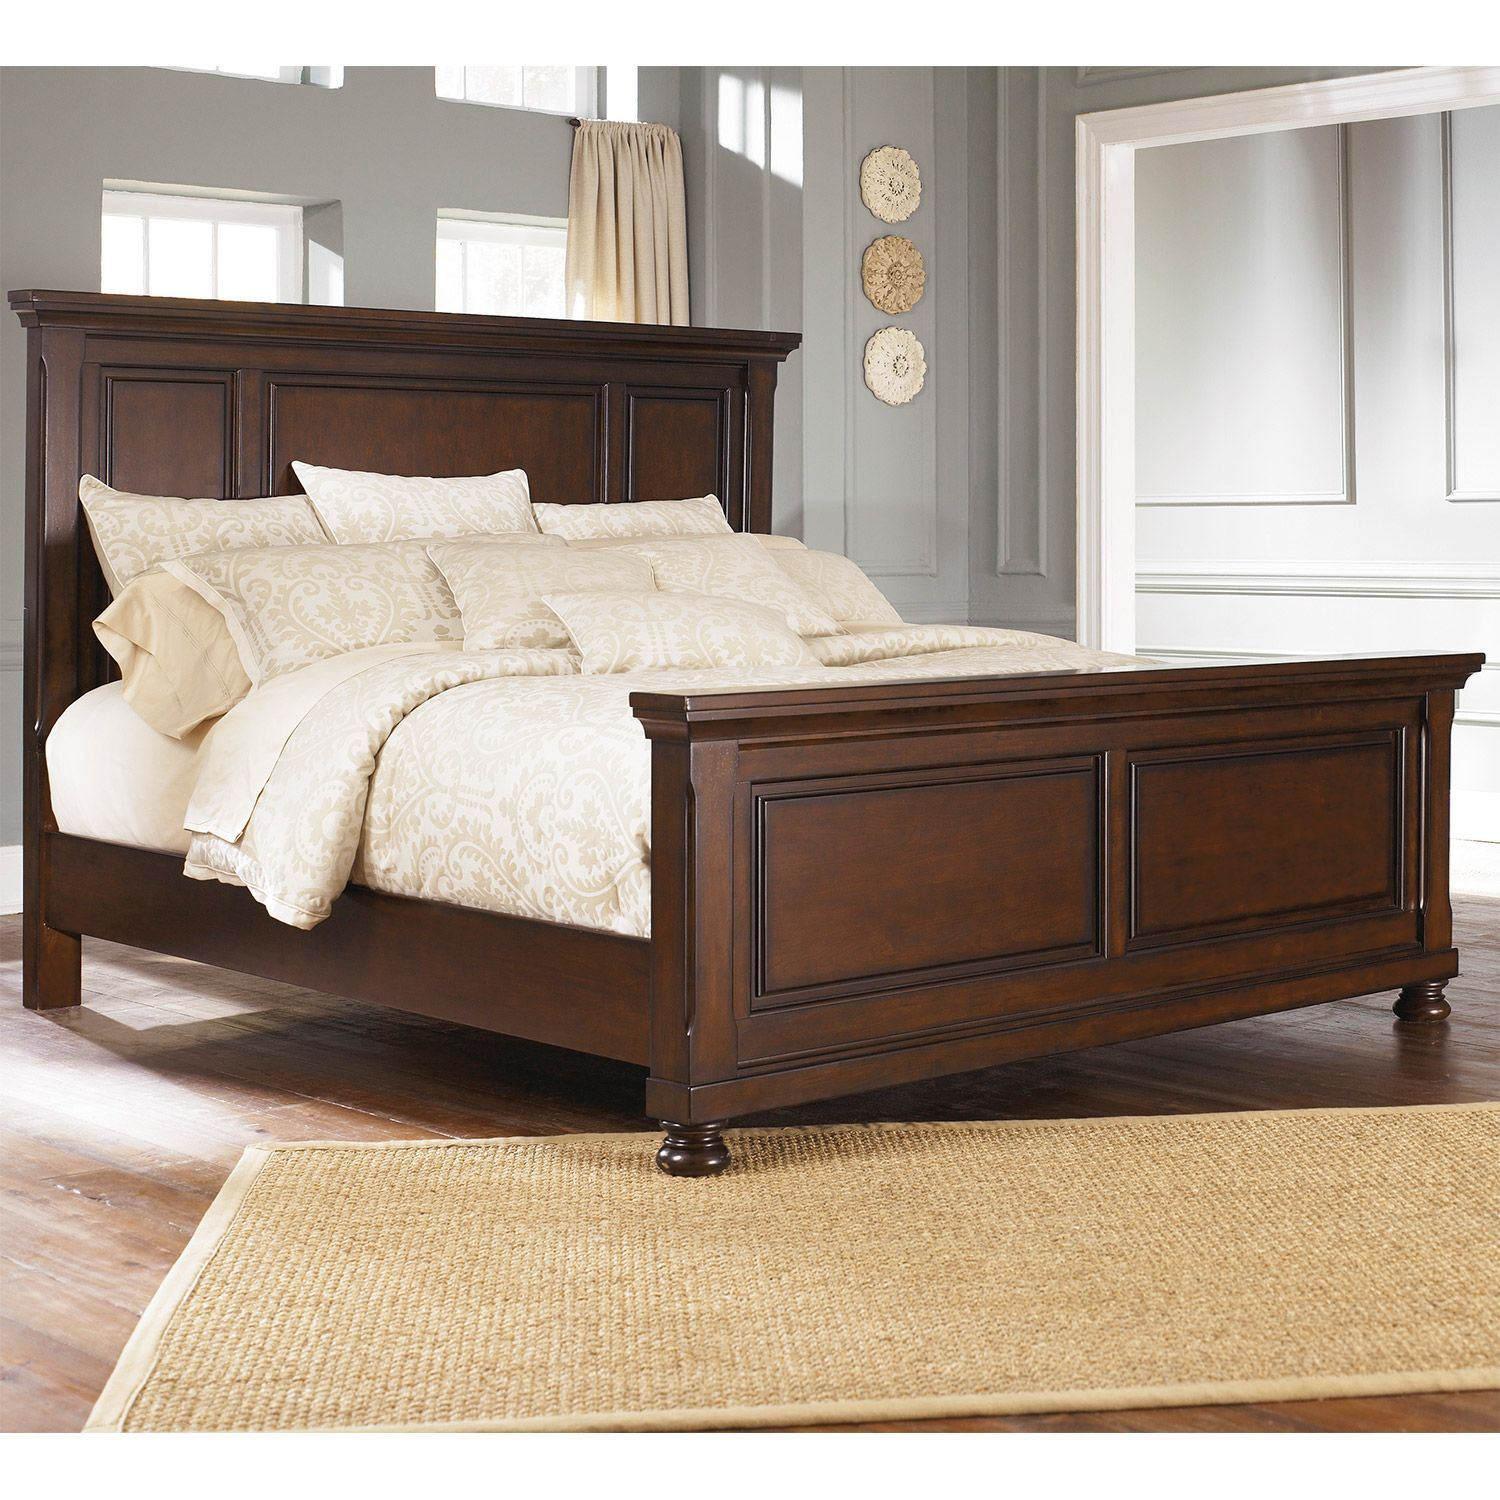 Porter King Panel Bed B697 KPNLBED Ashley Furniture AFW